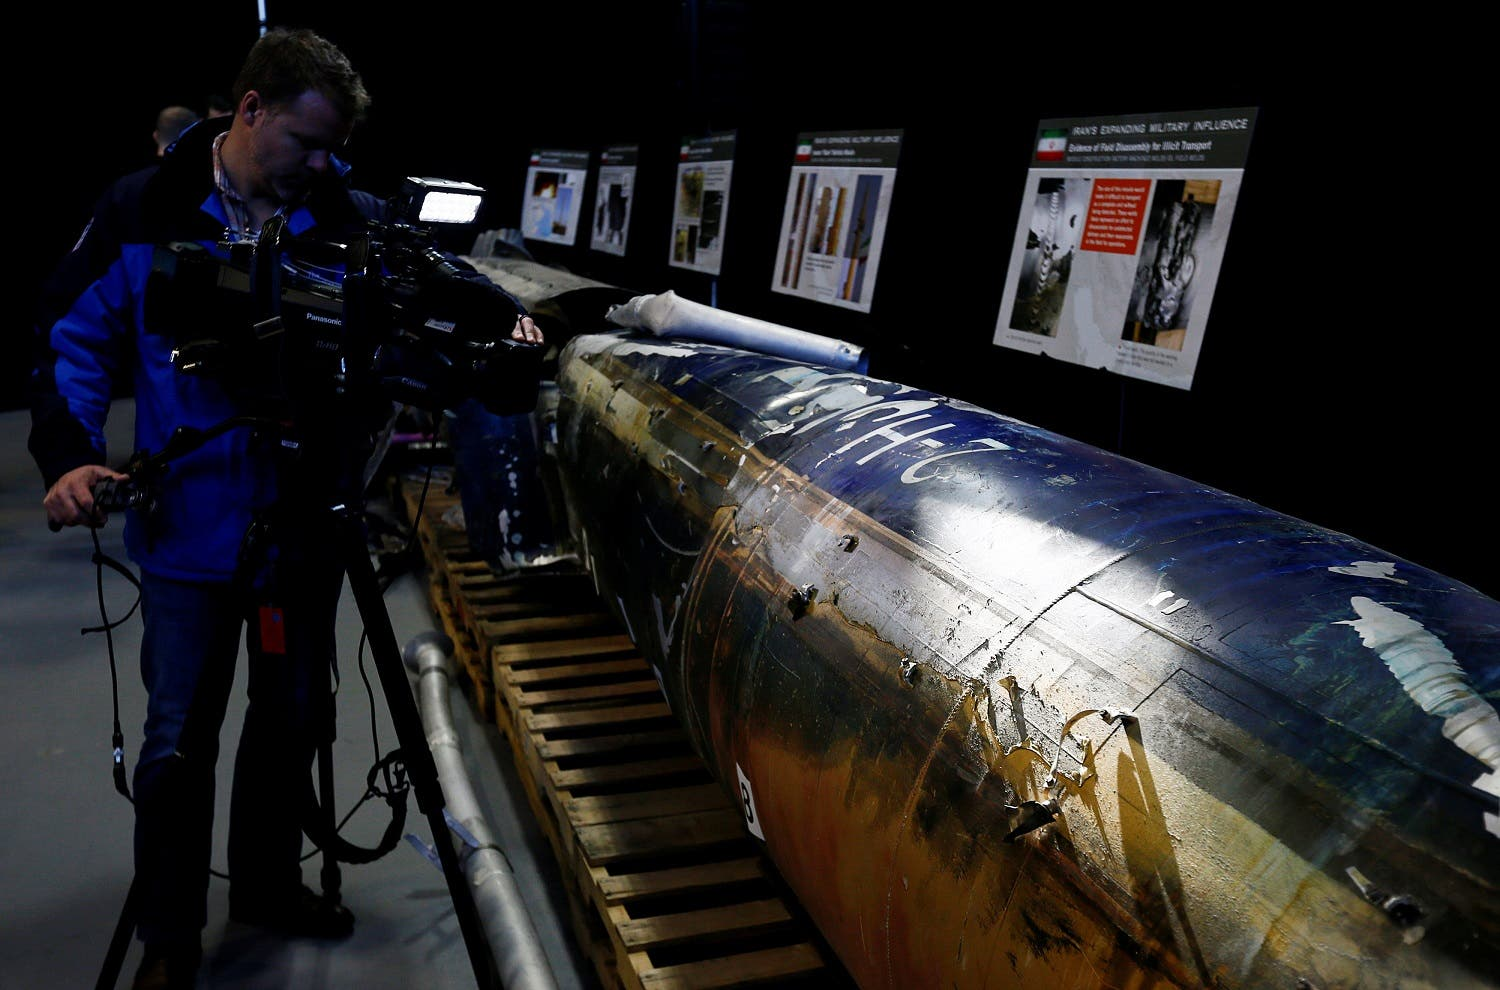 """A missile that the US Department of Defense says is a """"Qiam"""" ballistic missile manufactured in Iran and that the Pentagon says was fired by Houthi rebels from Yemen into Saudi Arabia on July 22, 2017 is seen on display at a US military base in Washington, on December 13, 2017. (Reuters)"""